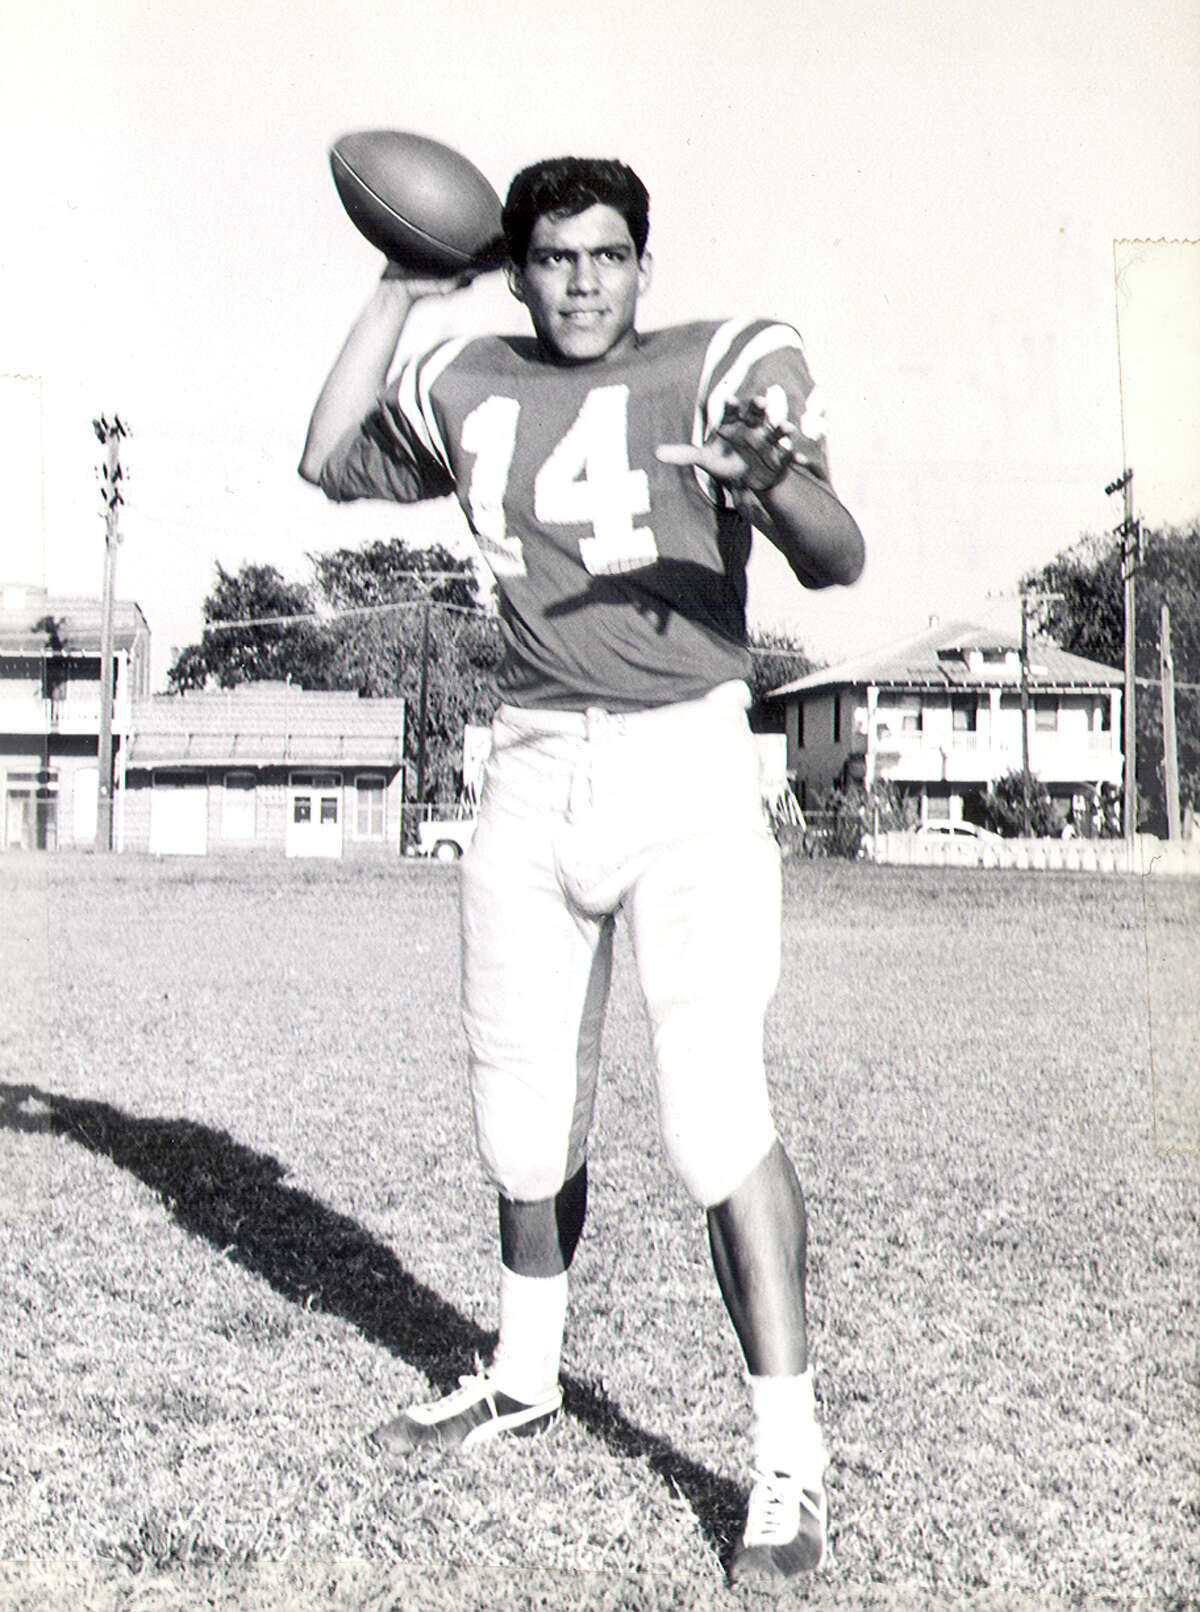 Vic Castillo - a 1963 Brackenridge High School graduate and a state champion quarterback in football. In Castillo's senior year, the Eagles capped an 11-3 season with a 30-26 win over Borger High School in the 1962 Class 4A state championship game. Castillo, called a side-armed passing wizard by the San Antonio Express-News, completed 14 of 28 passes for 256 yards and three touchdowns in the title game. His passing yardage total stood as a record for a 4A state final until 1971. Castillo completed 112 of 225 passes for 2,145 yards and 25 TDs in 1962, becoming the first high school player in state history to pass for more than 2,000 yards in a season. He signed with Kansas State in 1963 and played quarterback for the Wildcats in 1964 and 1965. Castillo completed his collegiate career at Kansas City Teachers College and earned a degree in physical education. He returned to SAISD in 1977 and for 24 years served as a coach, teacher and administrator at Sam Houston, Fox Tech, Lanier and Brackenridge.